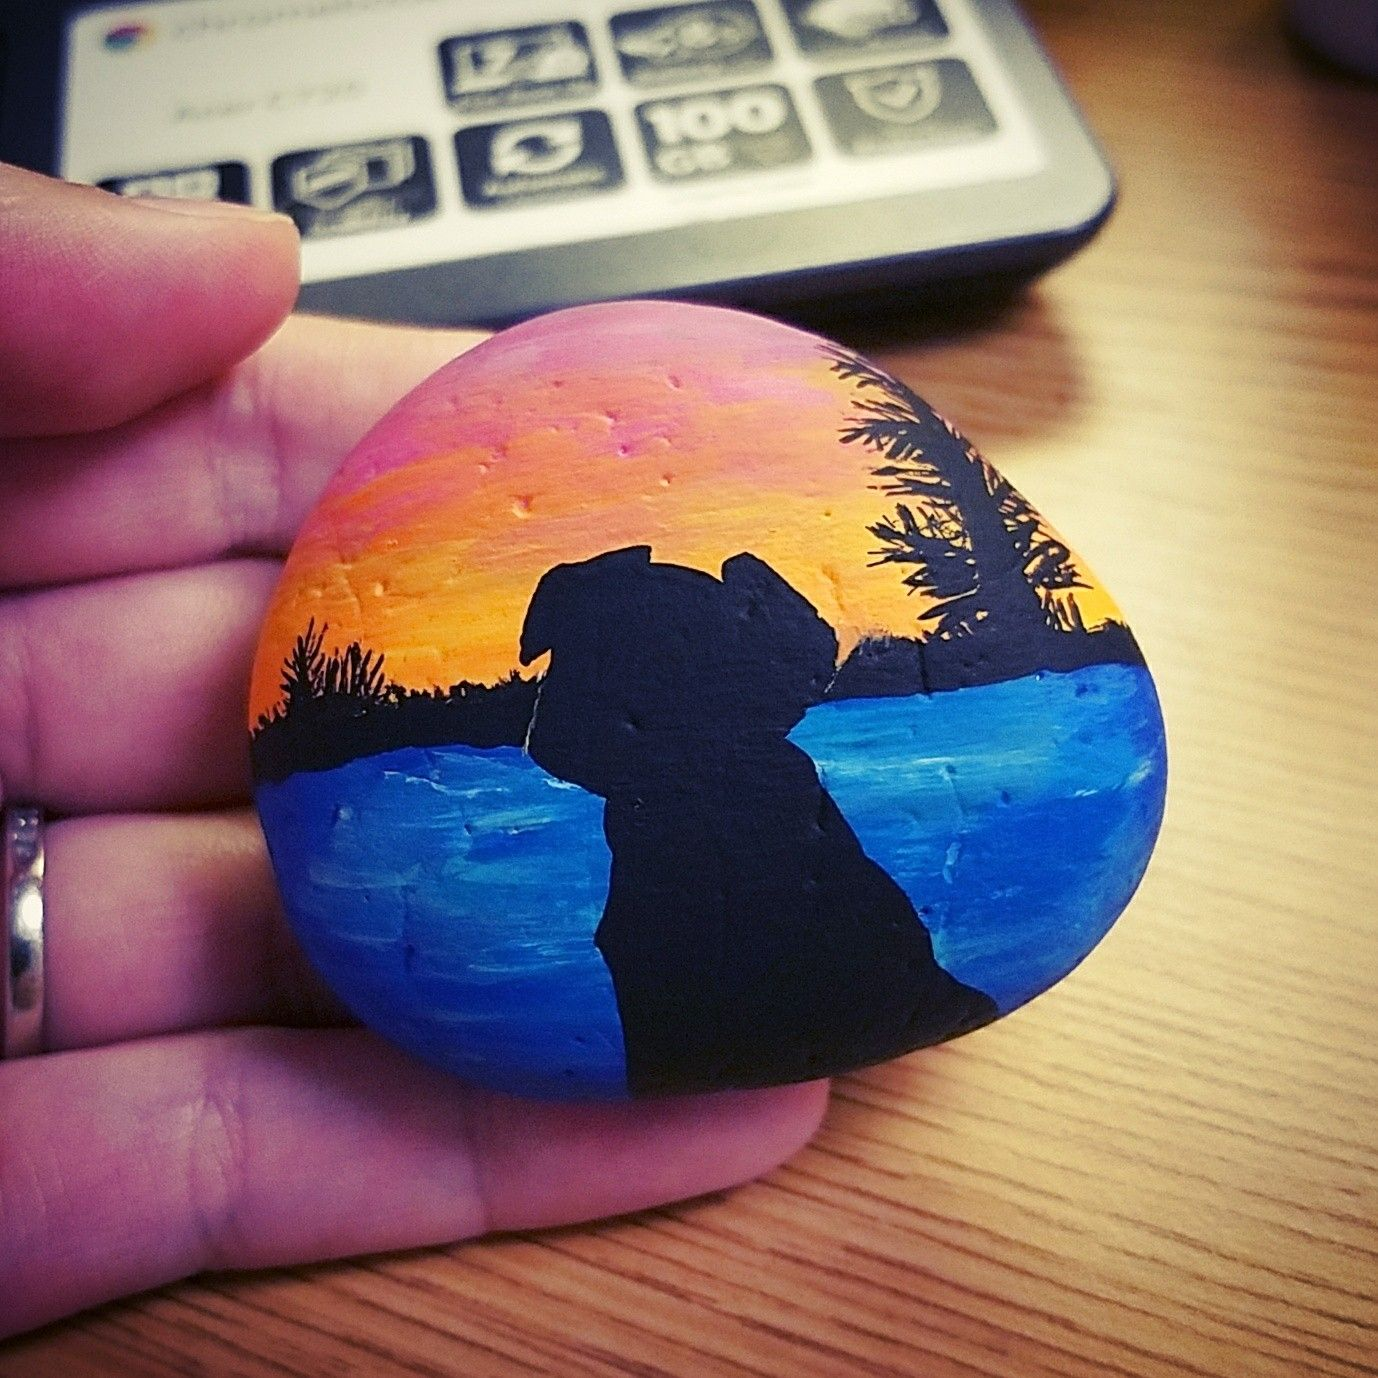 Painted Rock Rock Painting Rock Art Painted Stones Dogs Sunset Painted Rock Animals Painted Rocks Painted Rocks Diy